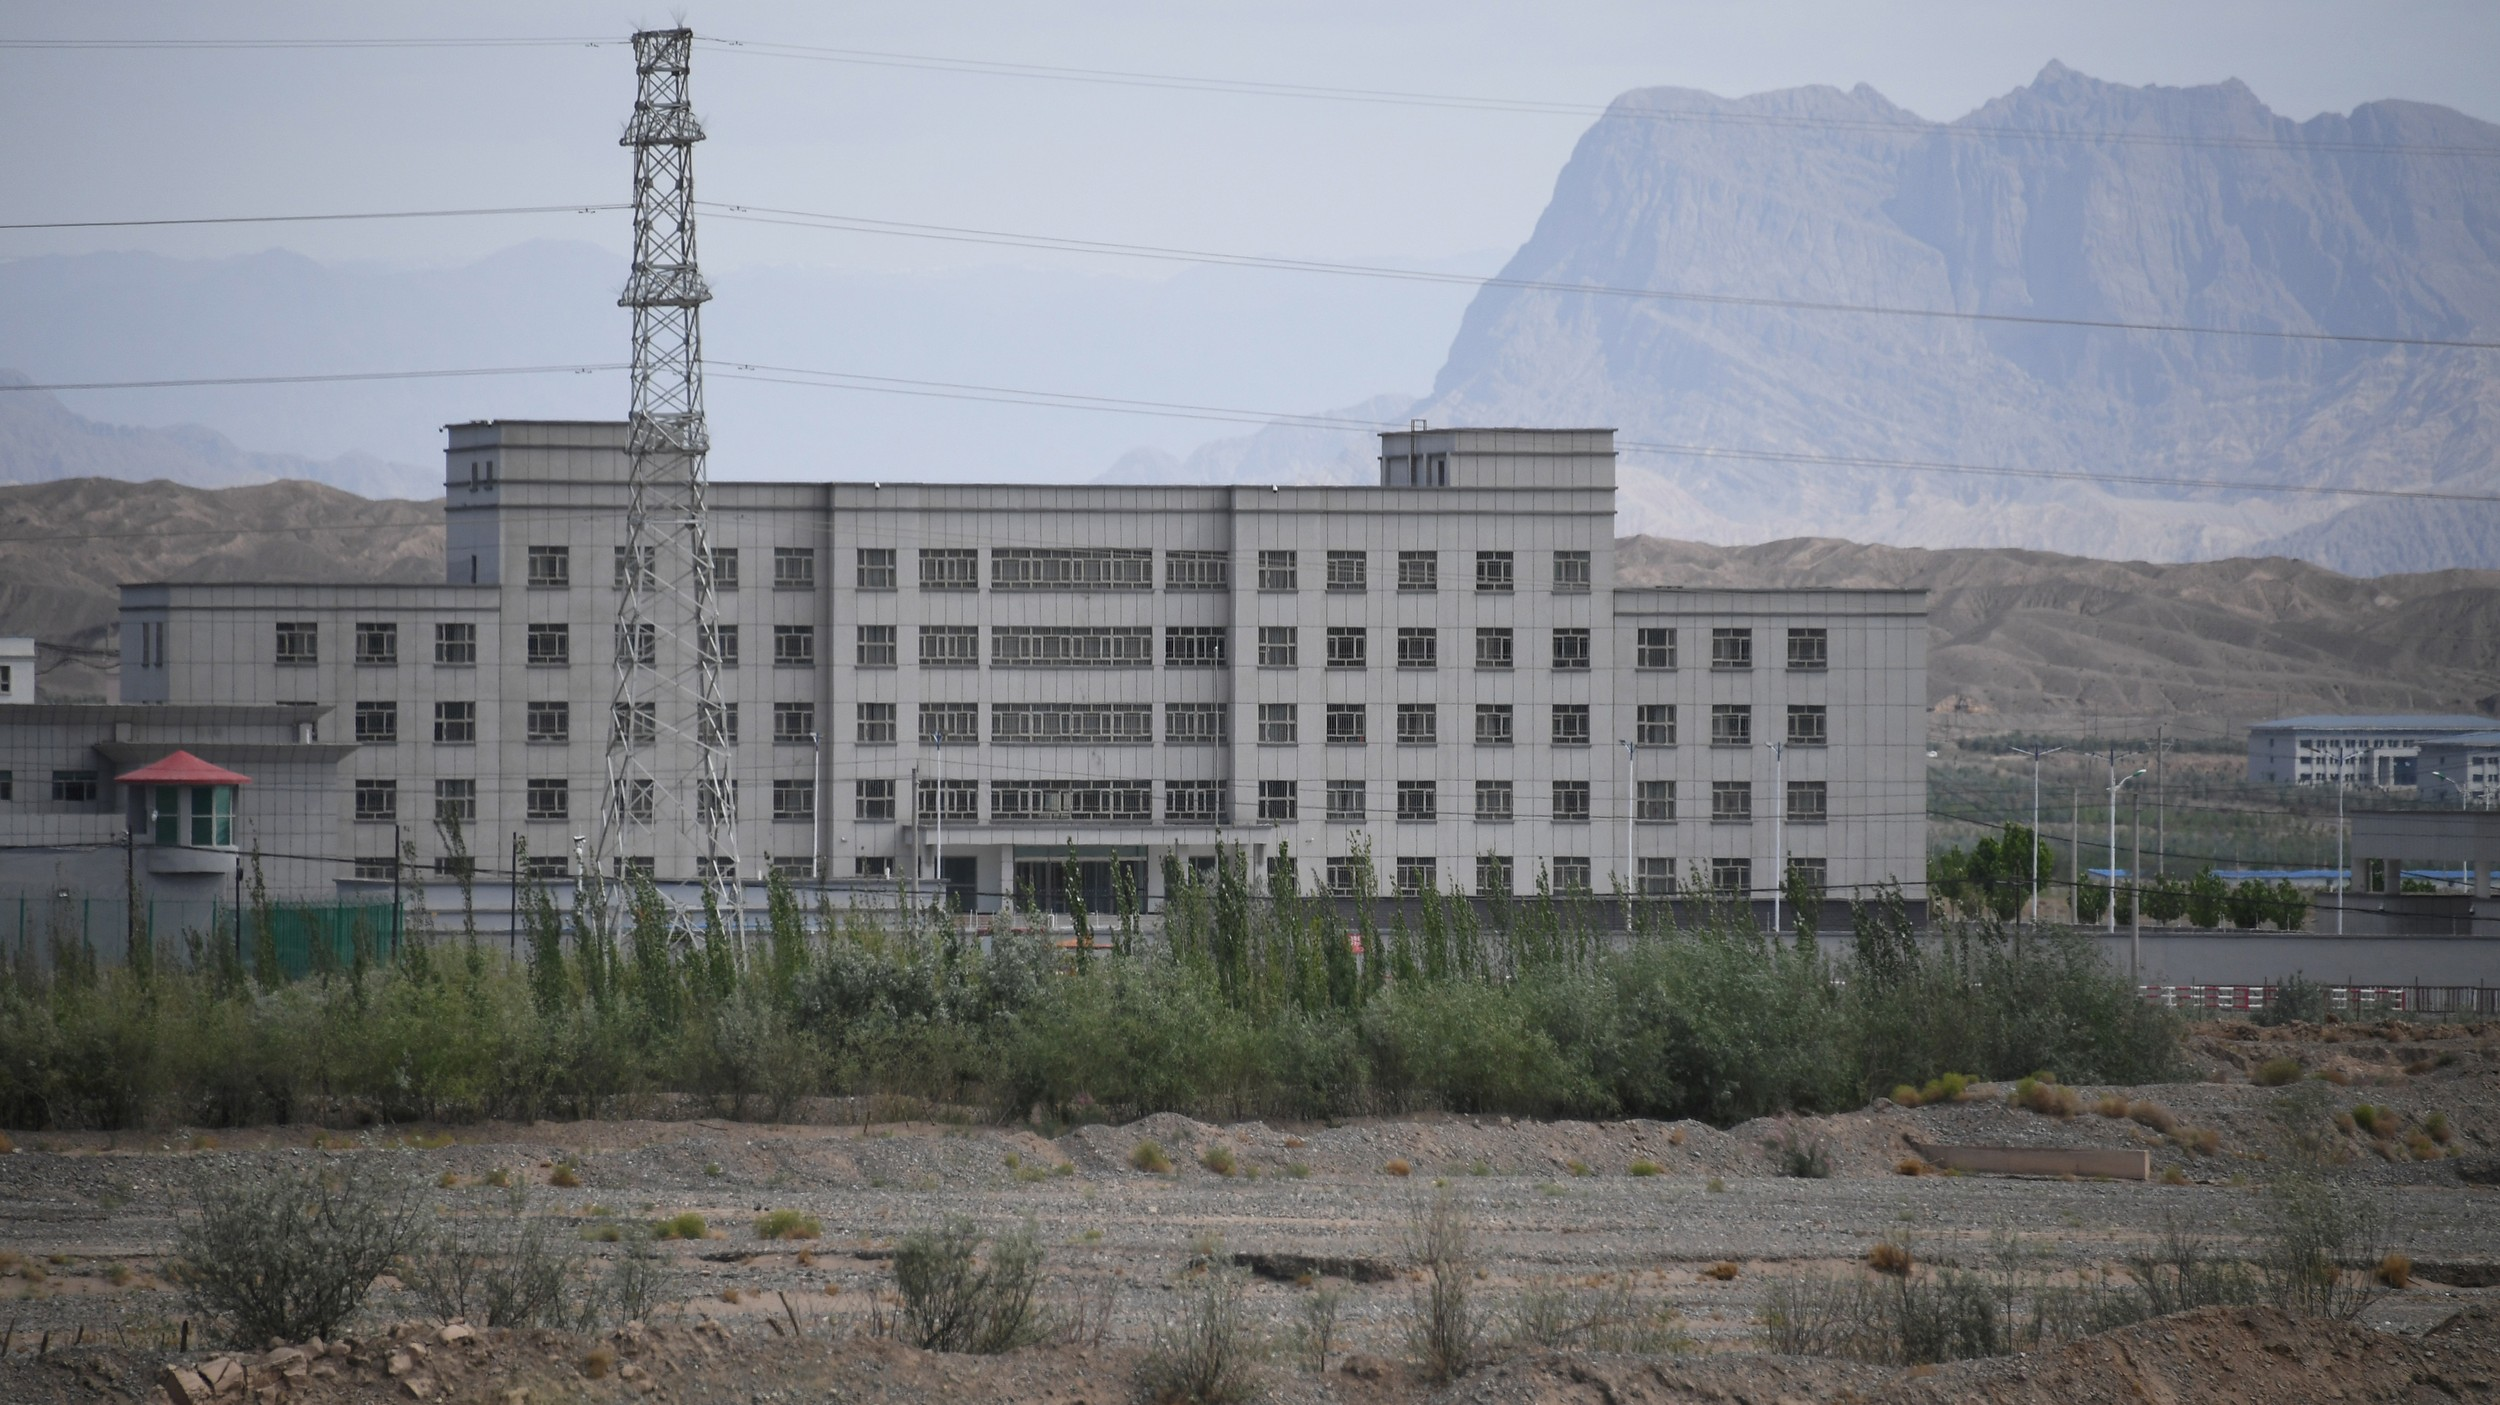 Forced re-education: Secret documents reveal how China mass detention camps work